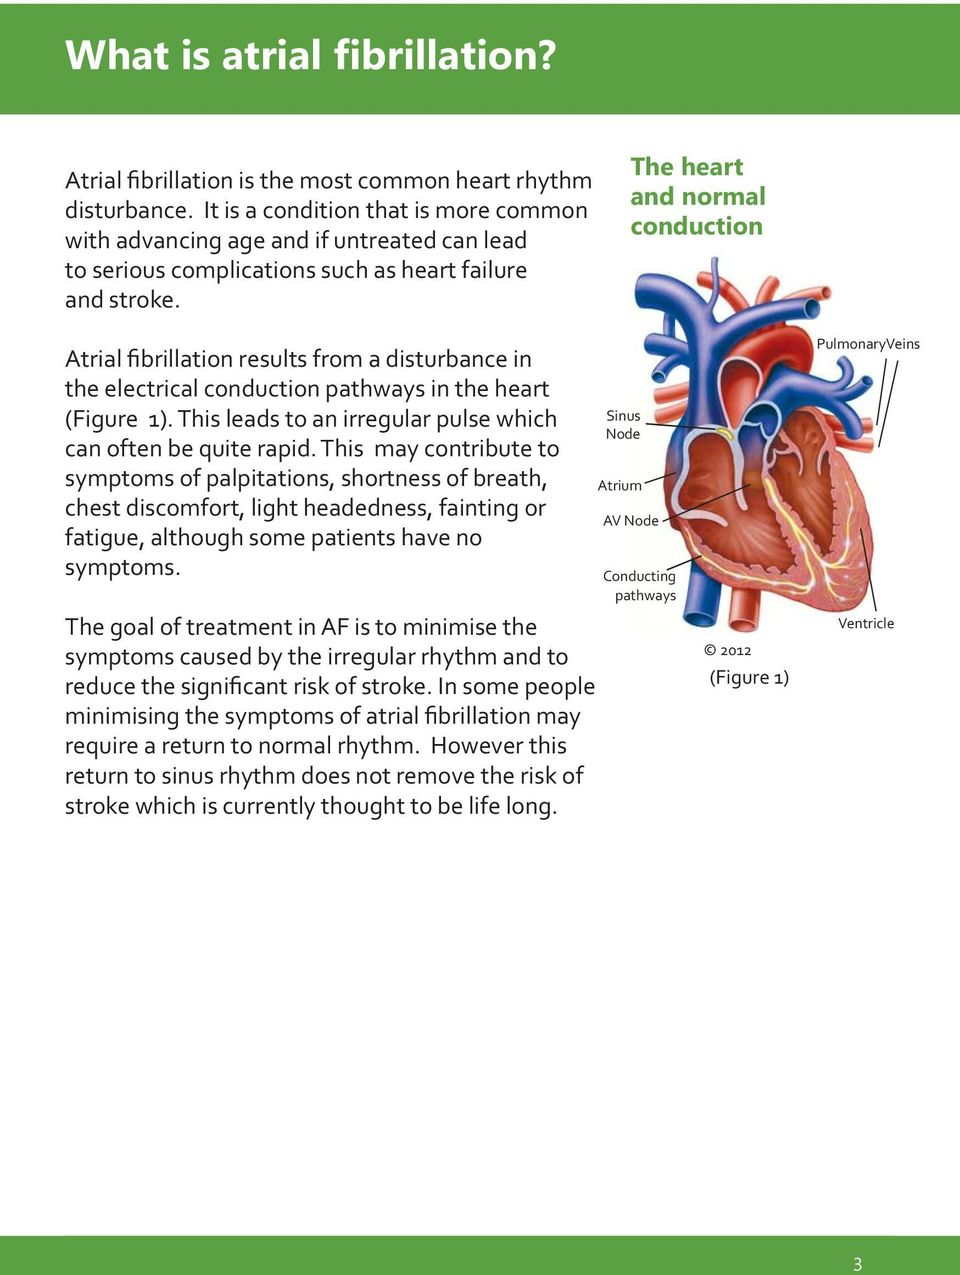 The heart and normal conduction Atrial fibrillation results from a disturbance in the electrical conduction pathways in the heart (Figure 1).